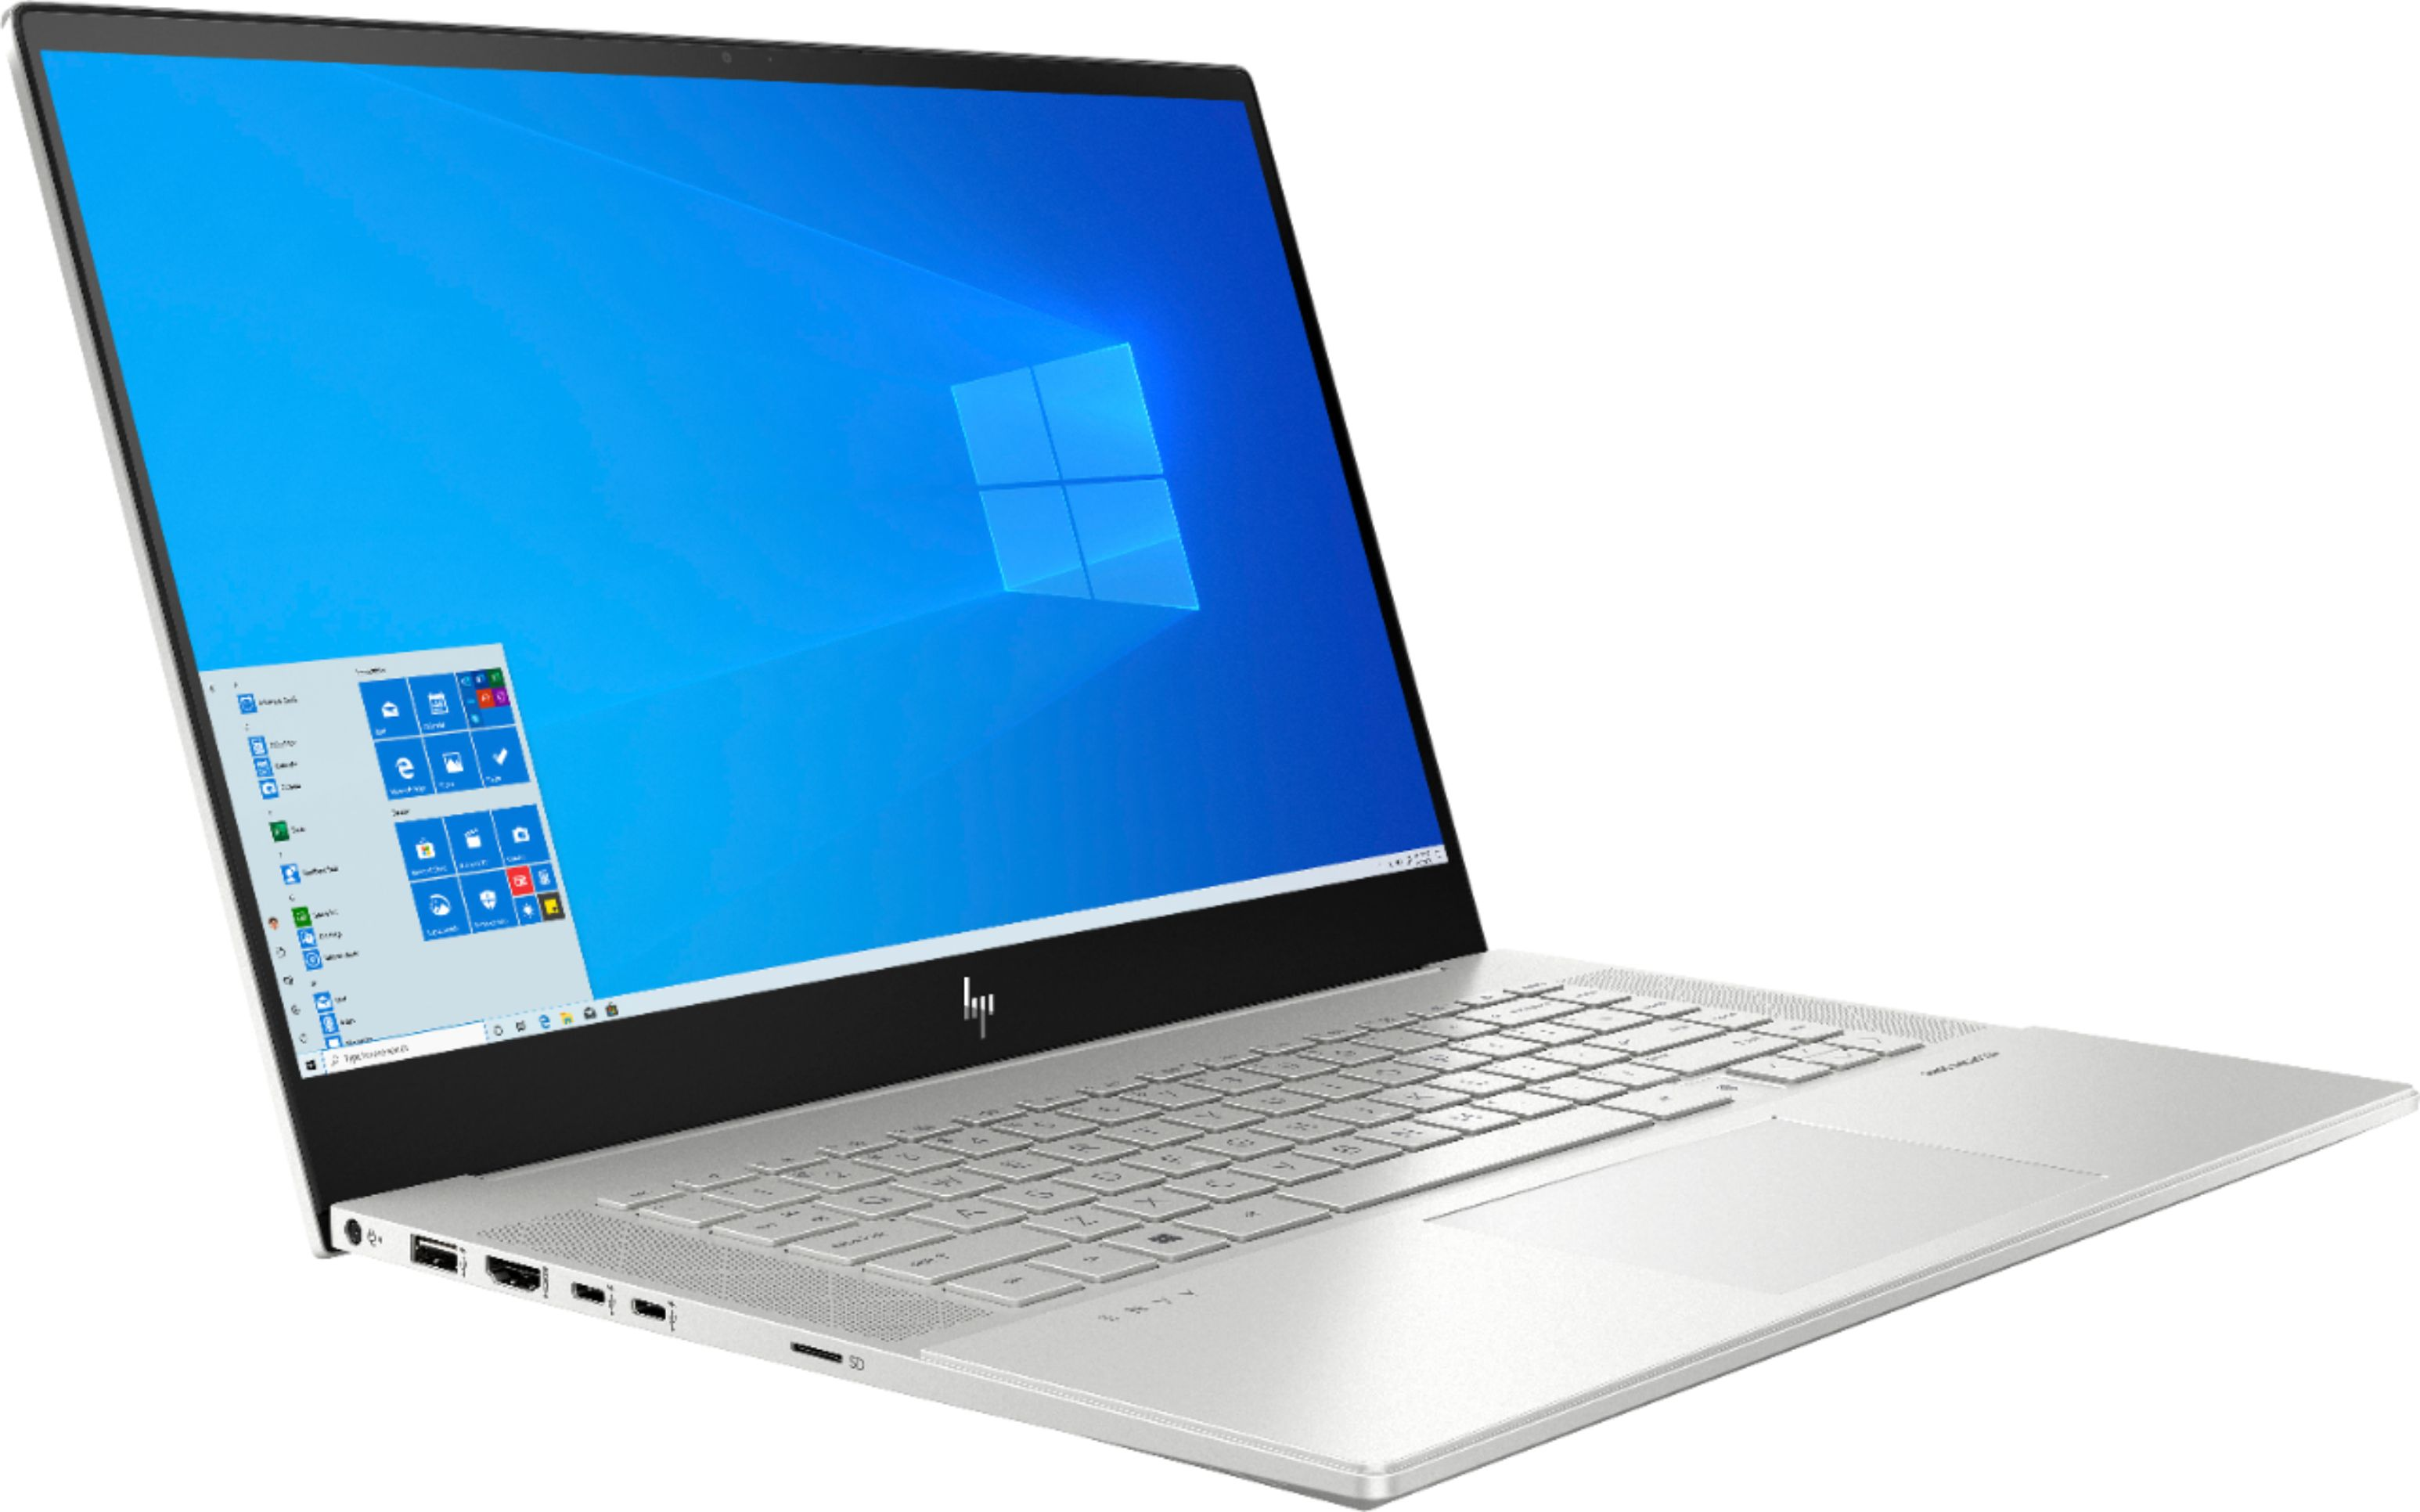 """Angle Zoom. HP - ENVY 15.6"""" 4K UHD Touch-Screen Laptop -  Intel Core i7 - 16GB Memory - NVIDIA GeForce RTX 2060 - 512GB SSD + 32GB Optane - Natural Silver."""